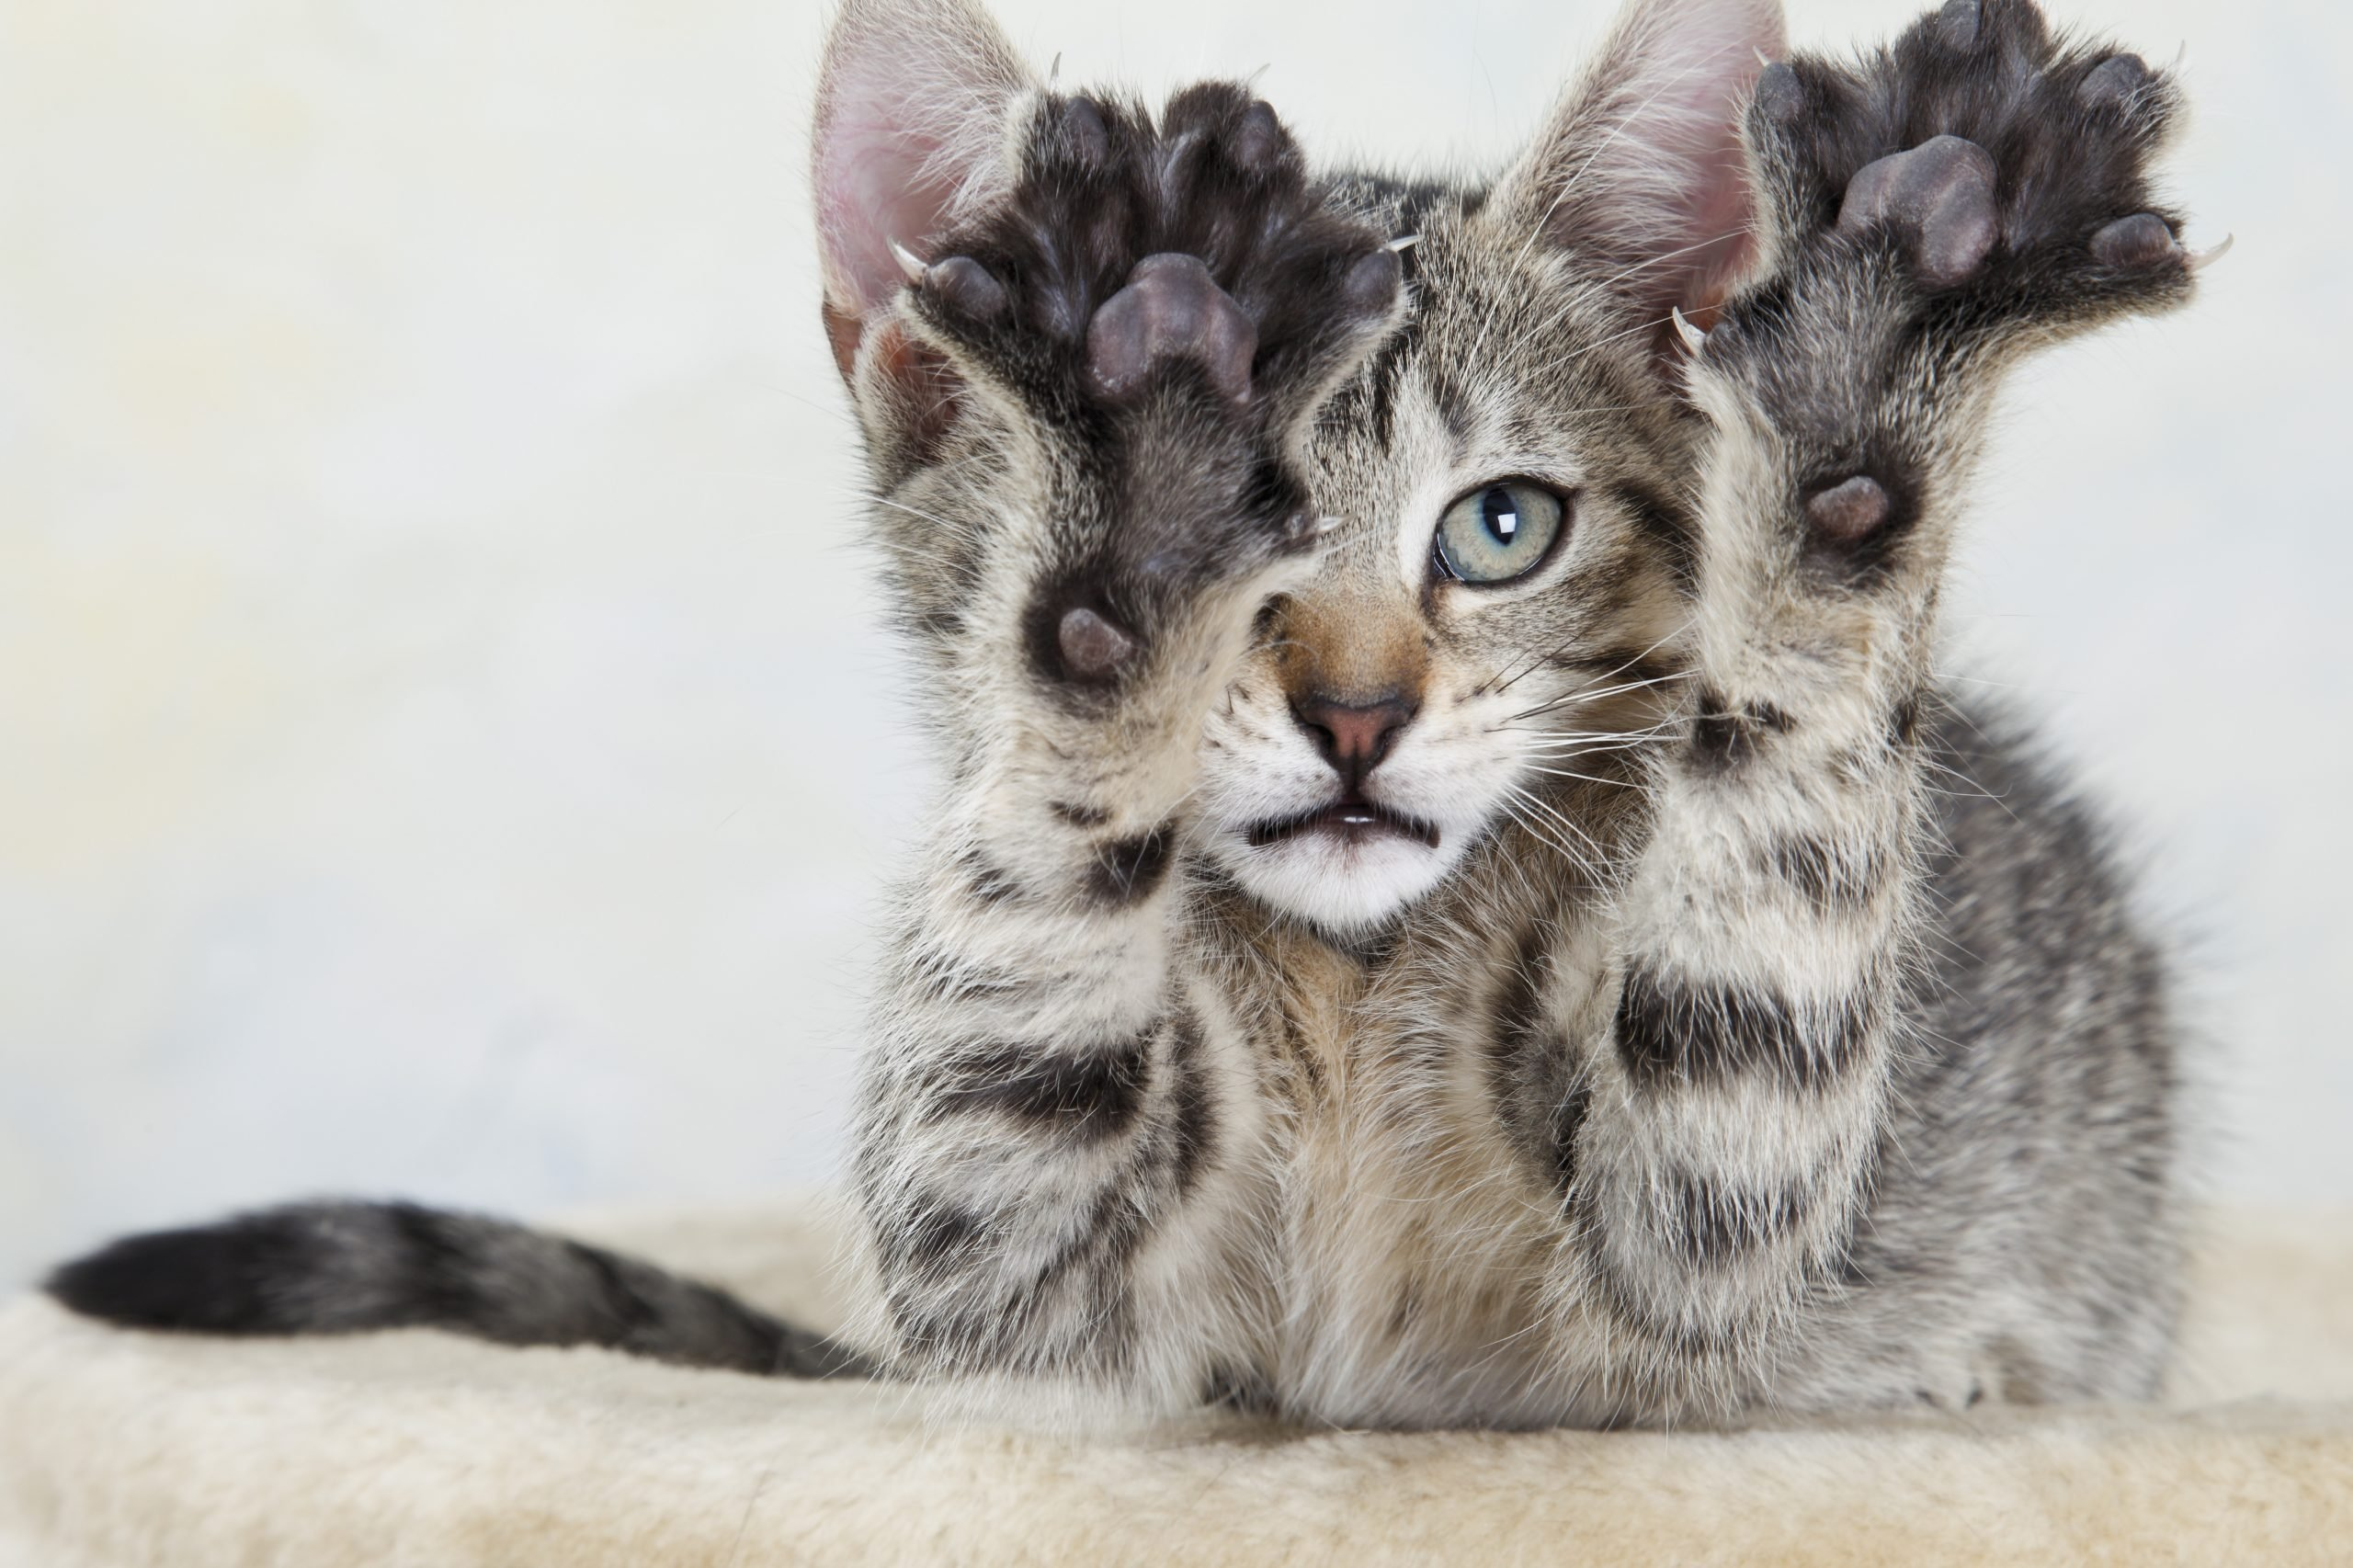 Domestic cat, kitten stretching out paw, portrait, close-up